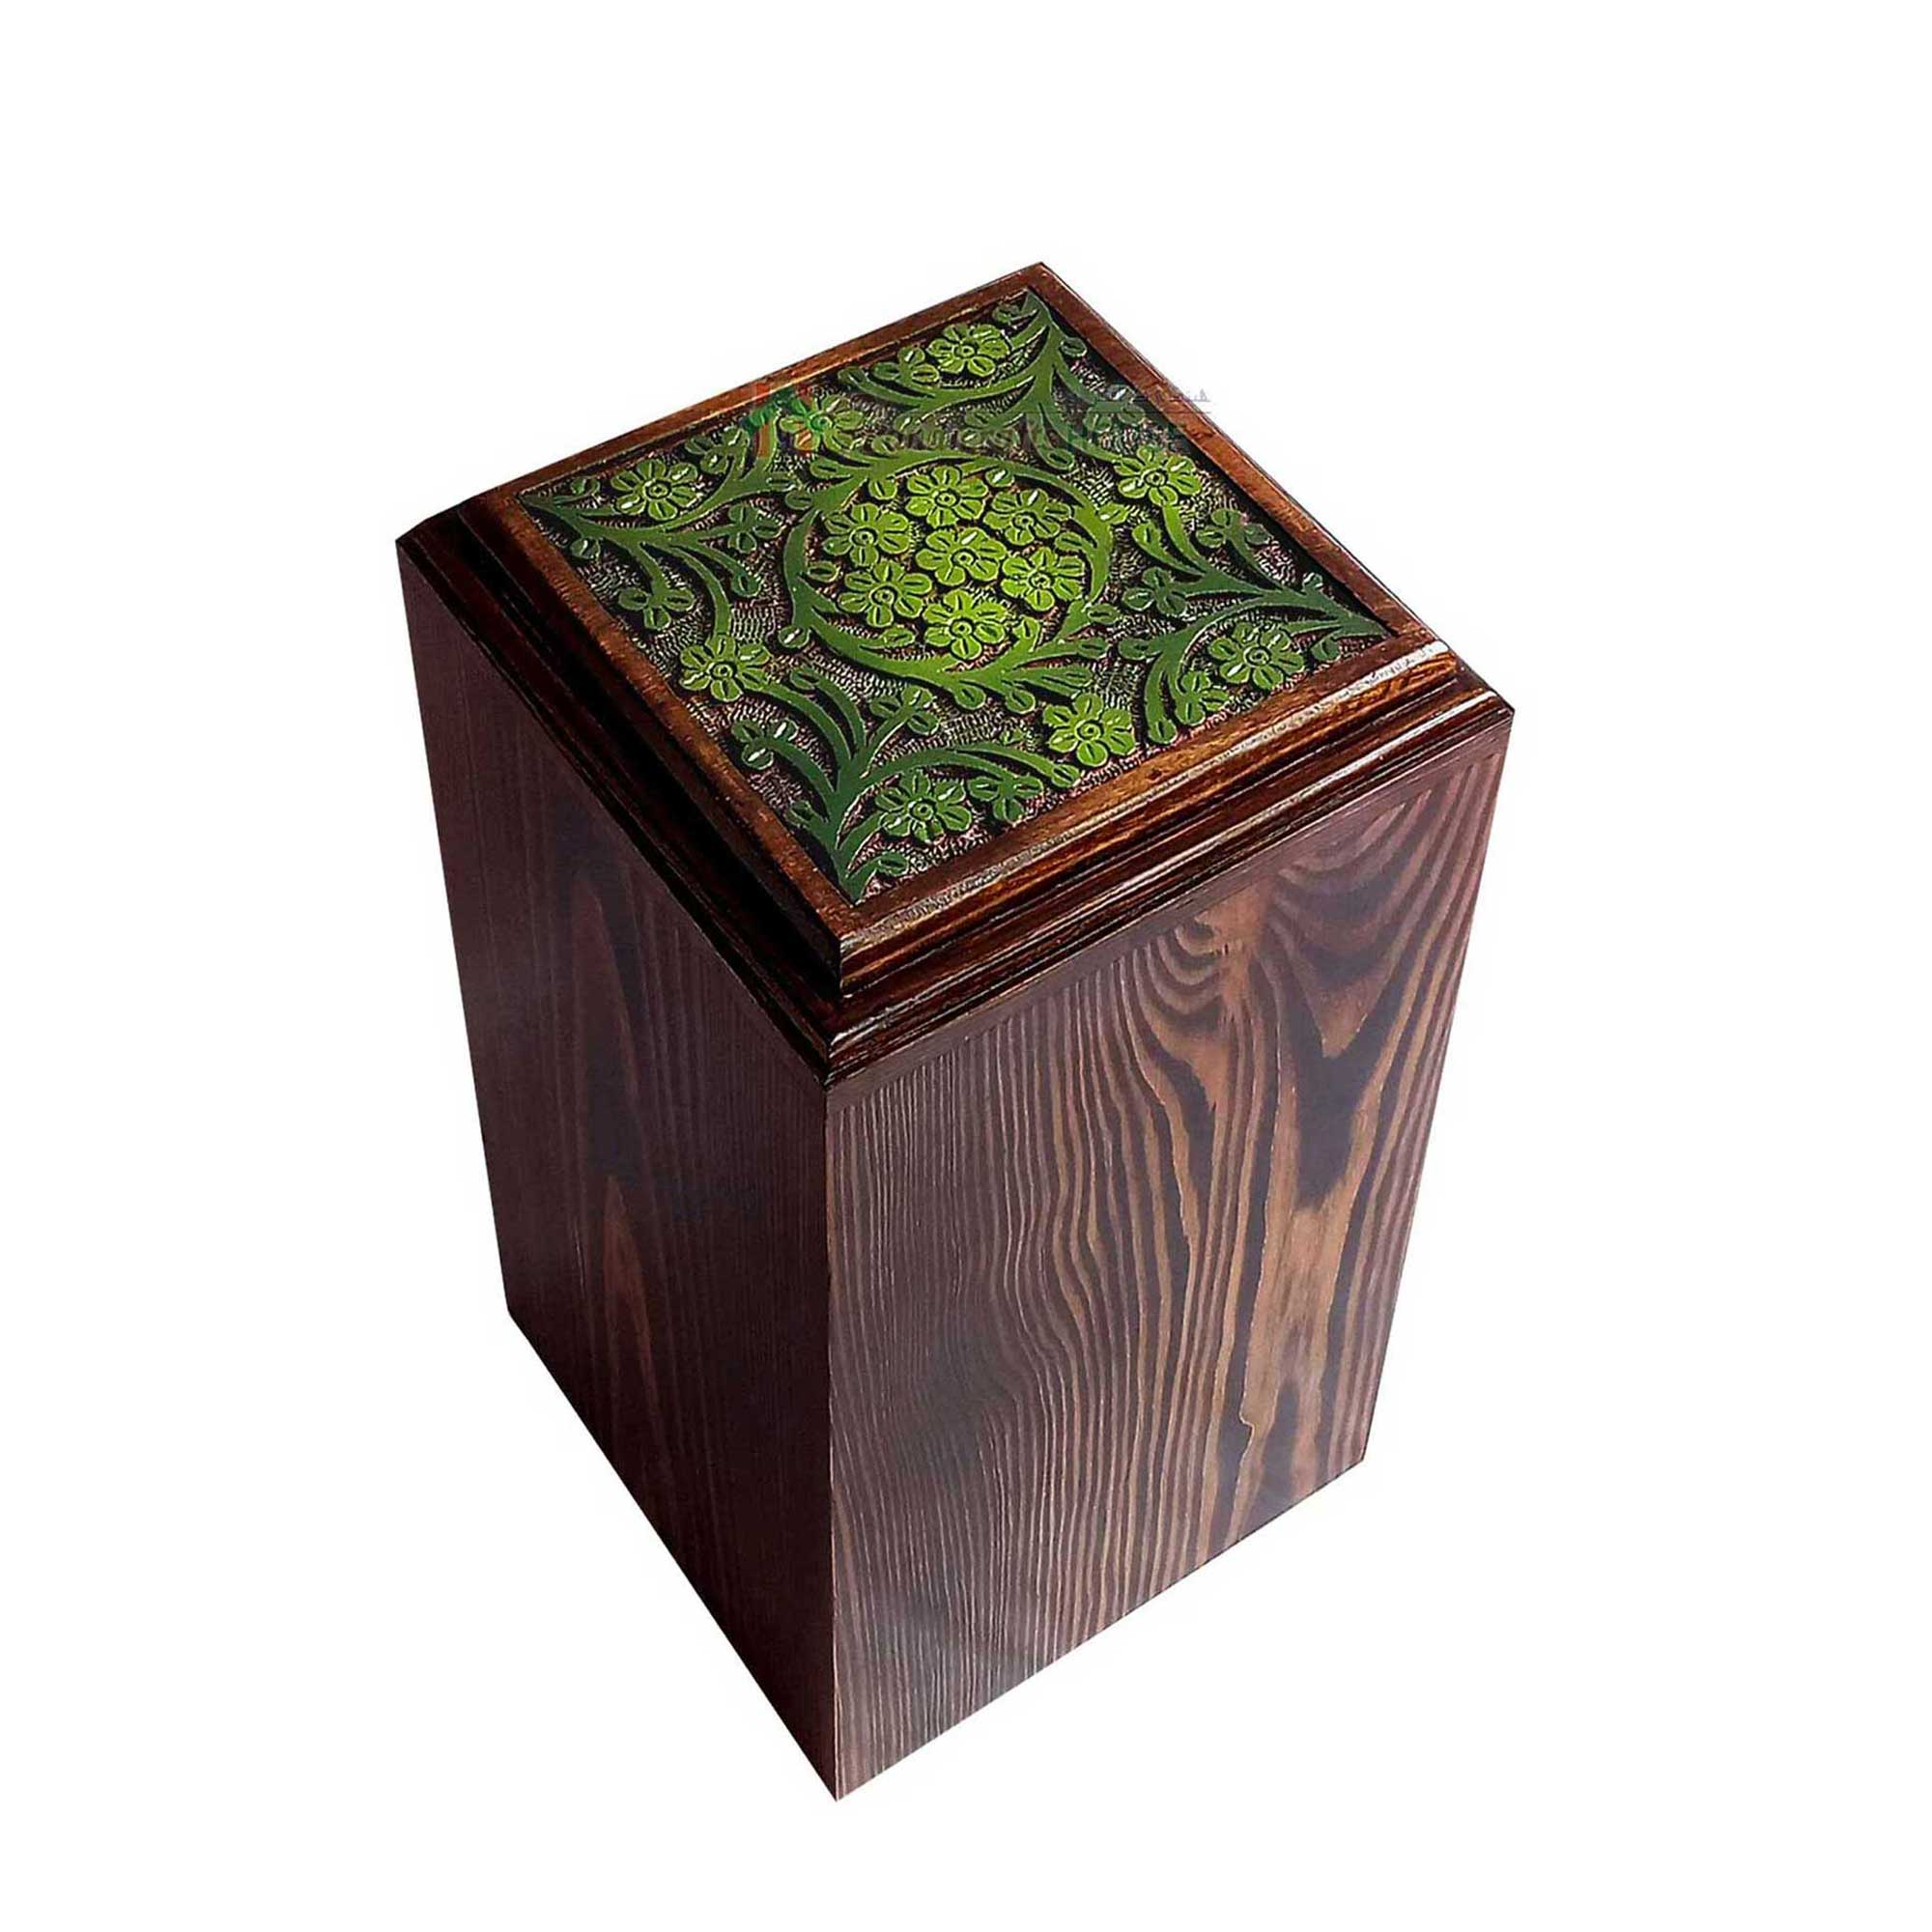 Timber Urns For Human Ashes, Wood Funeral Urn, Decorative Boxes, Wooden Tableware, Memorials Casket Box